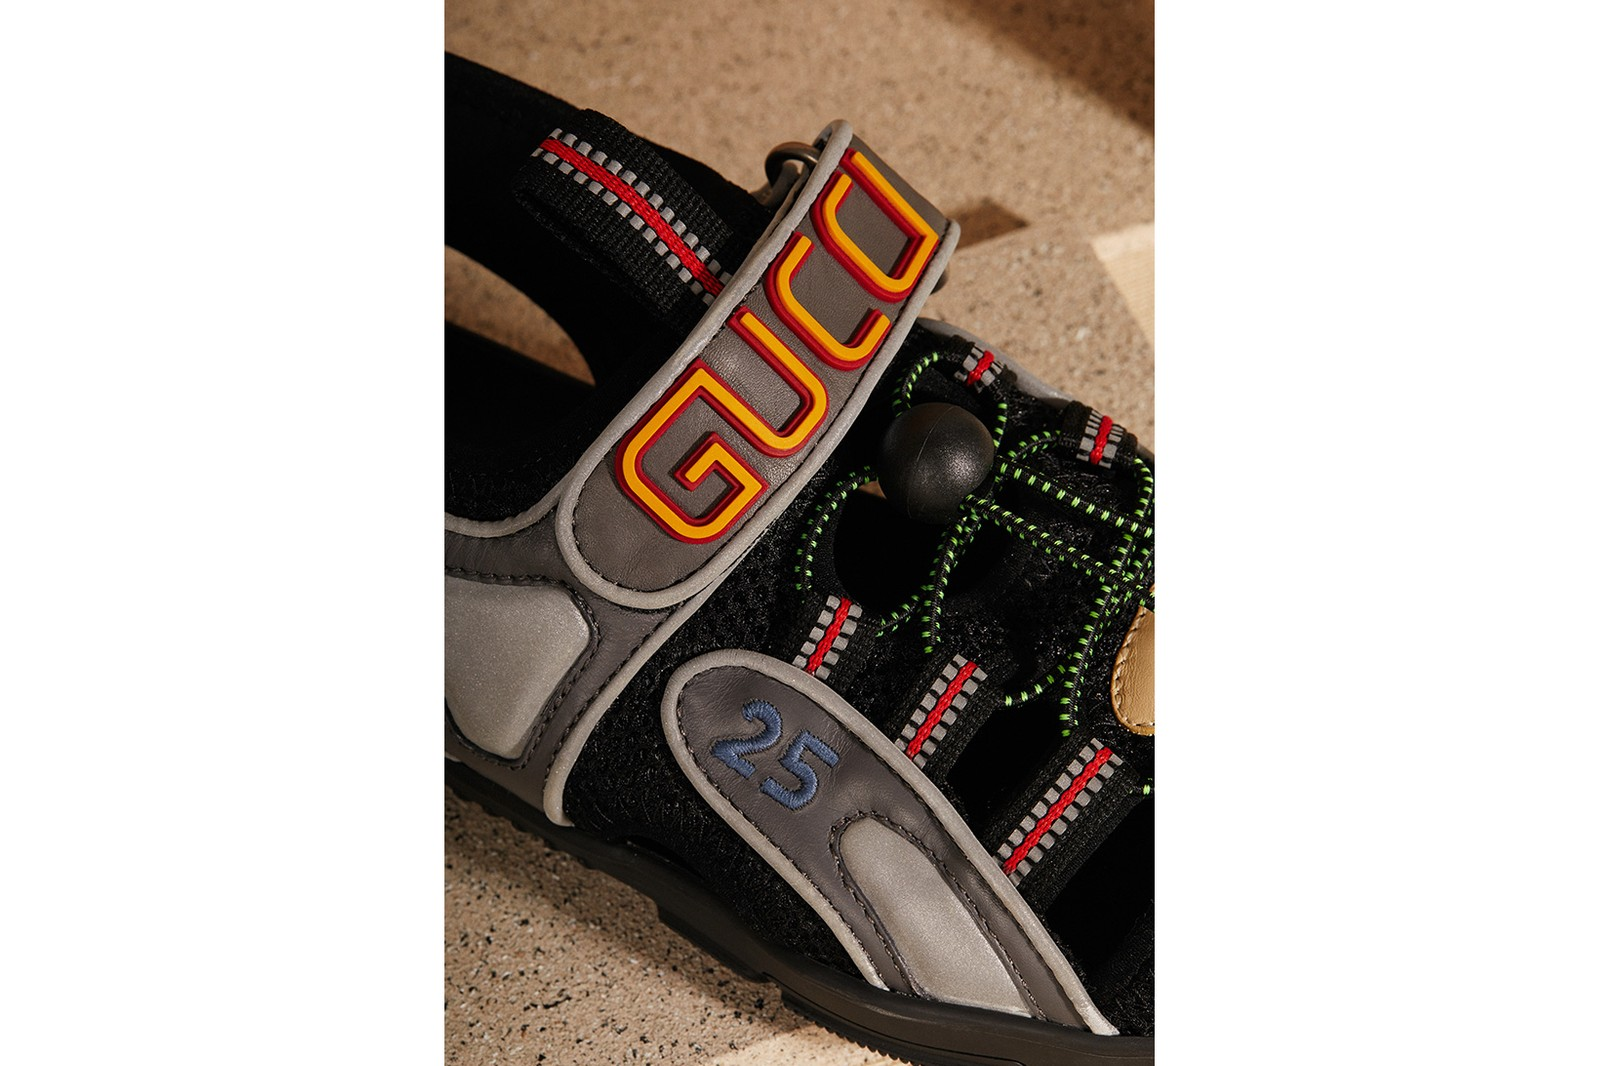 A Closer Look At Gucci Spring Summer 2019 Drops Gucci Socks Gucci Sneakers Gucci Backpack Gucci Tracksuit Gucci Mickey Mouse Bag